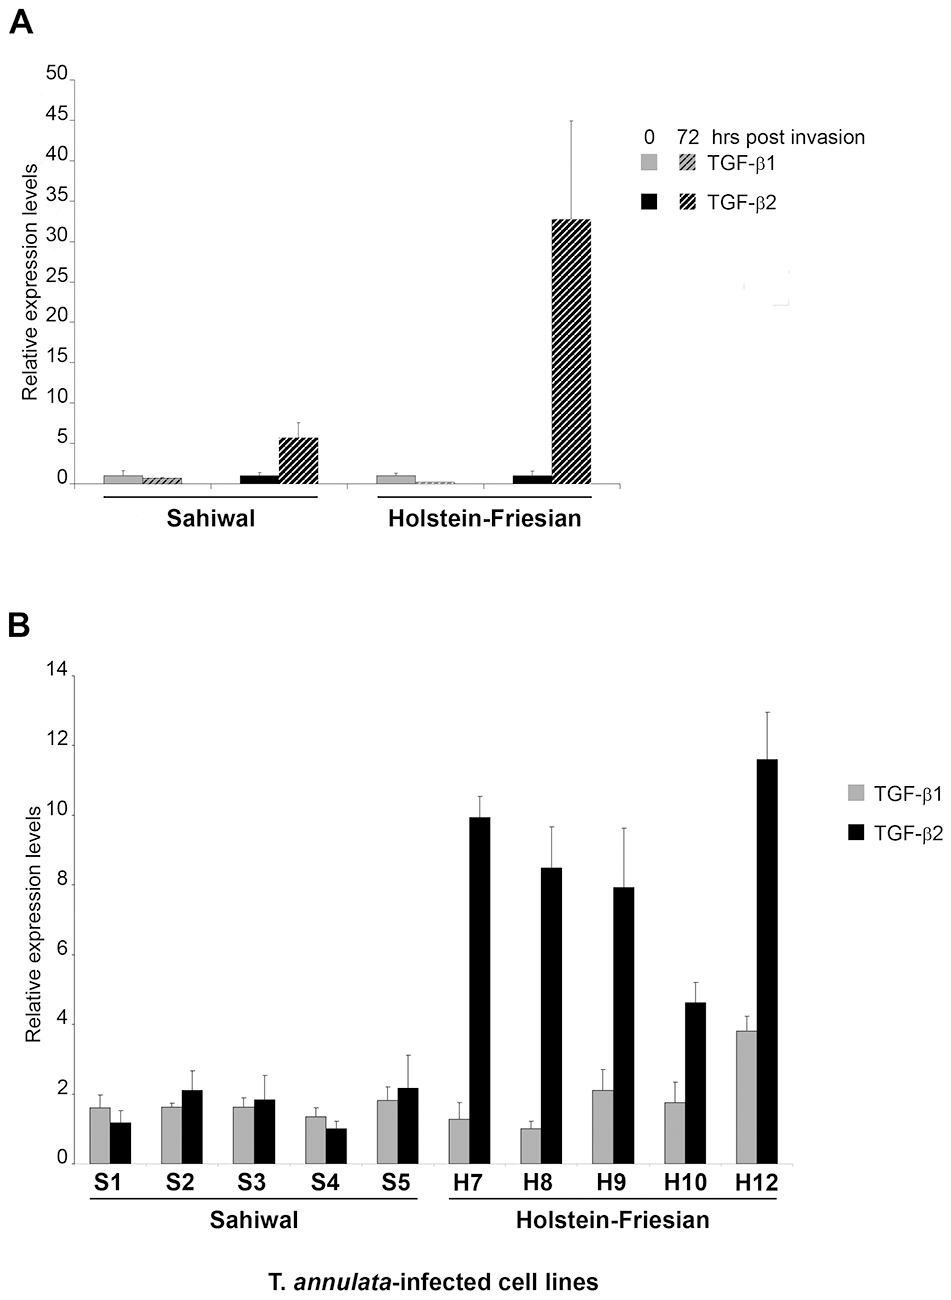 Induction of <i>TGF-b2</i> by <i>T. annulata</i> is greater in infected macrophages isolated from disease-susceptible compared to disease-resistant bovine hosts.